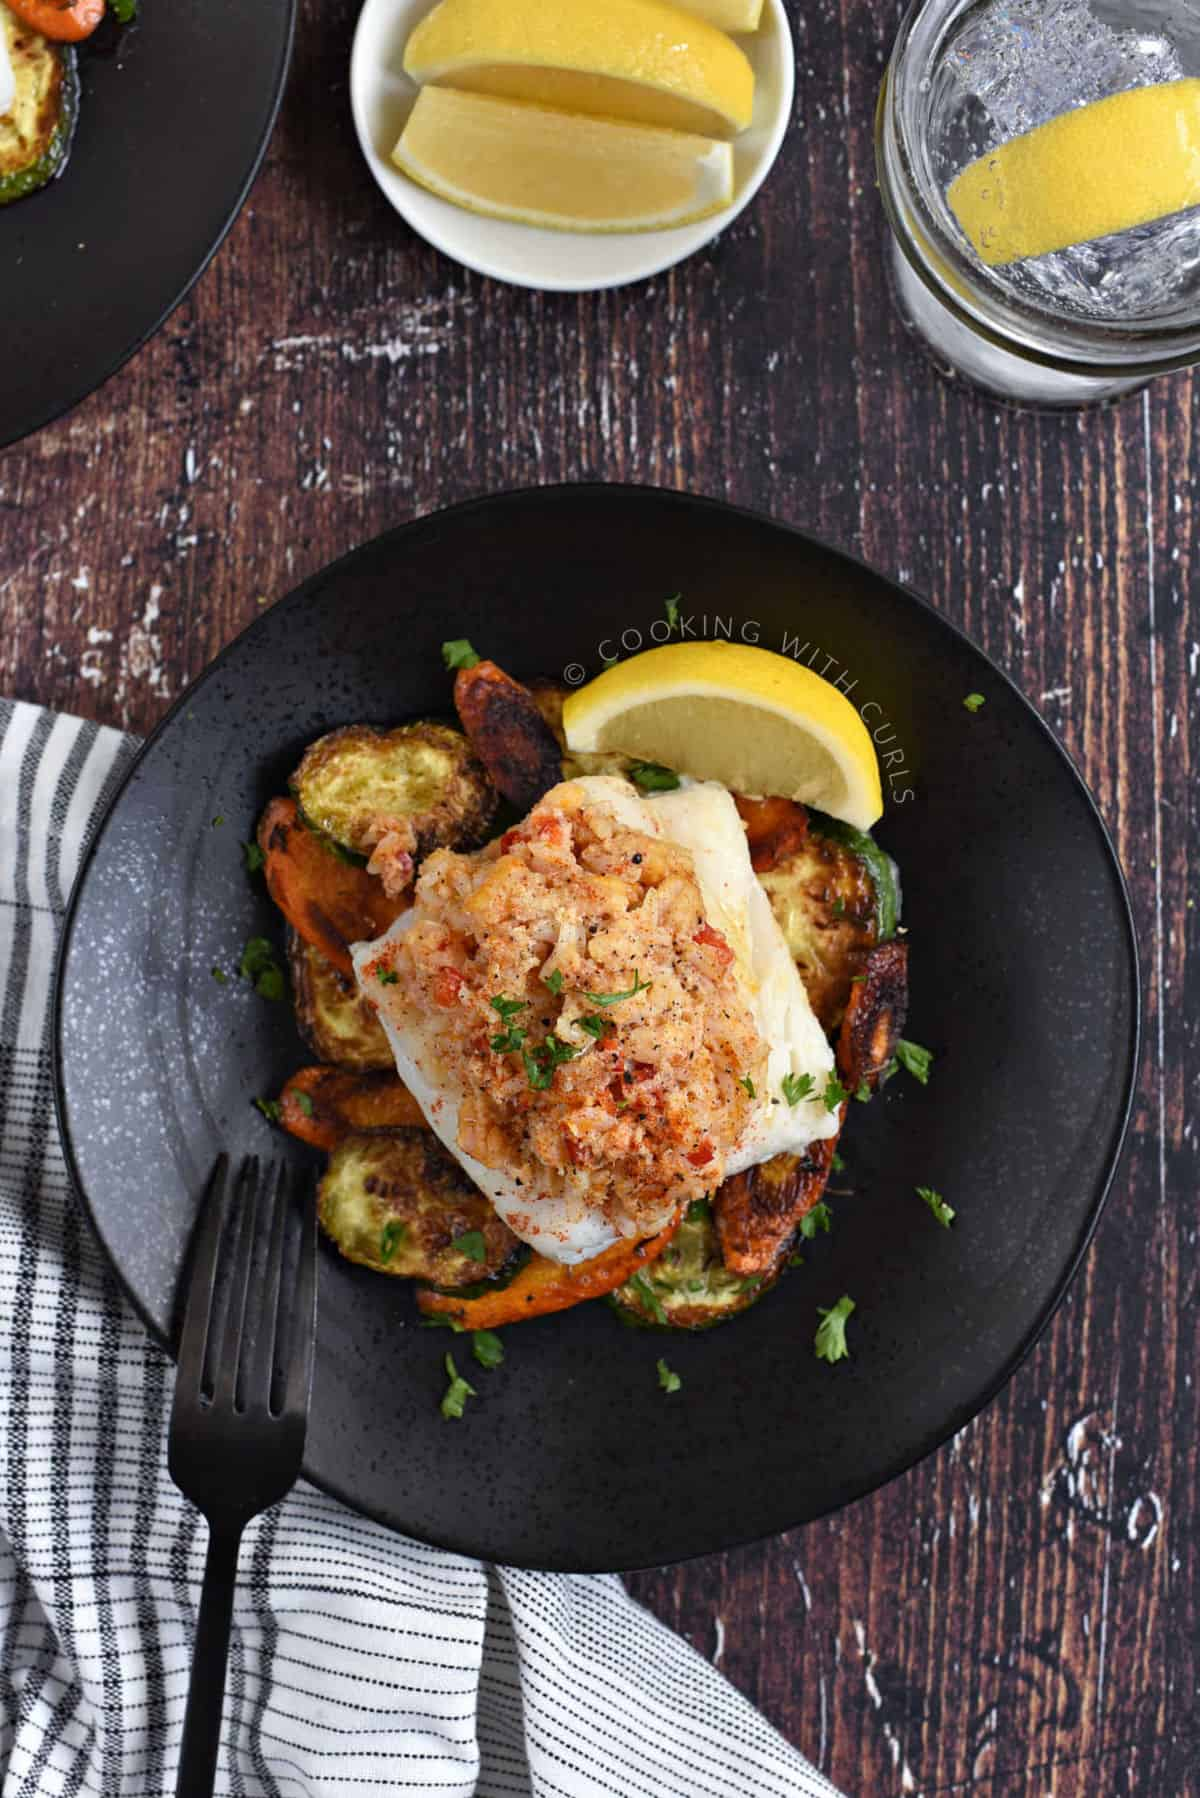 Looking down on a stuffed cod filet on top of sautéed zucchini and carrots with a slice of lemon on the plate and several more in a small bowl.